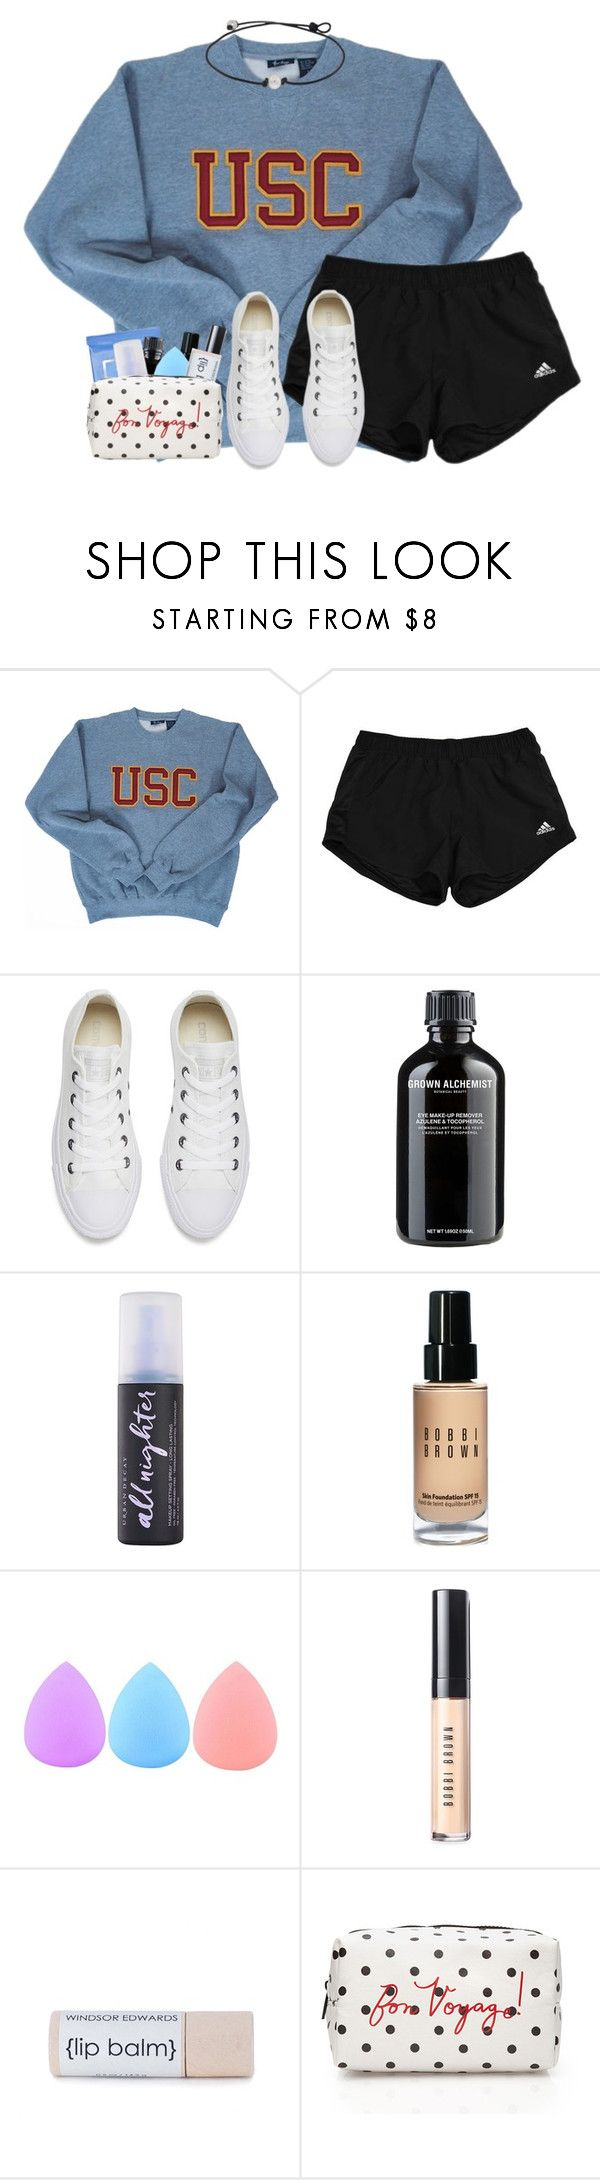 """""""BCC day 4! """" by dejonggirls ❤ liked on Polyvore featuring Oxford, Converse, Neutrogena, Grown Alchemist, Urban Decay, Bobbi Brown Cosmetics, Zodaca, Forever 21 and Biblecampcountdown"""